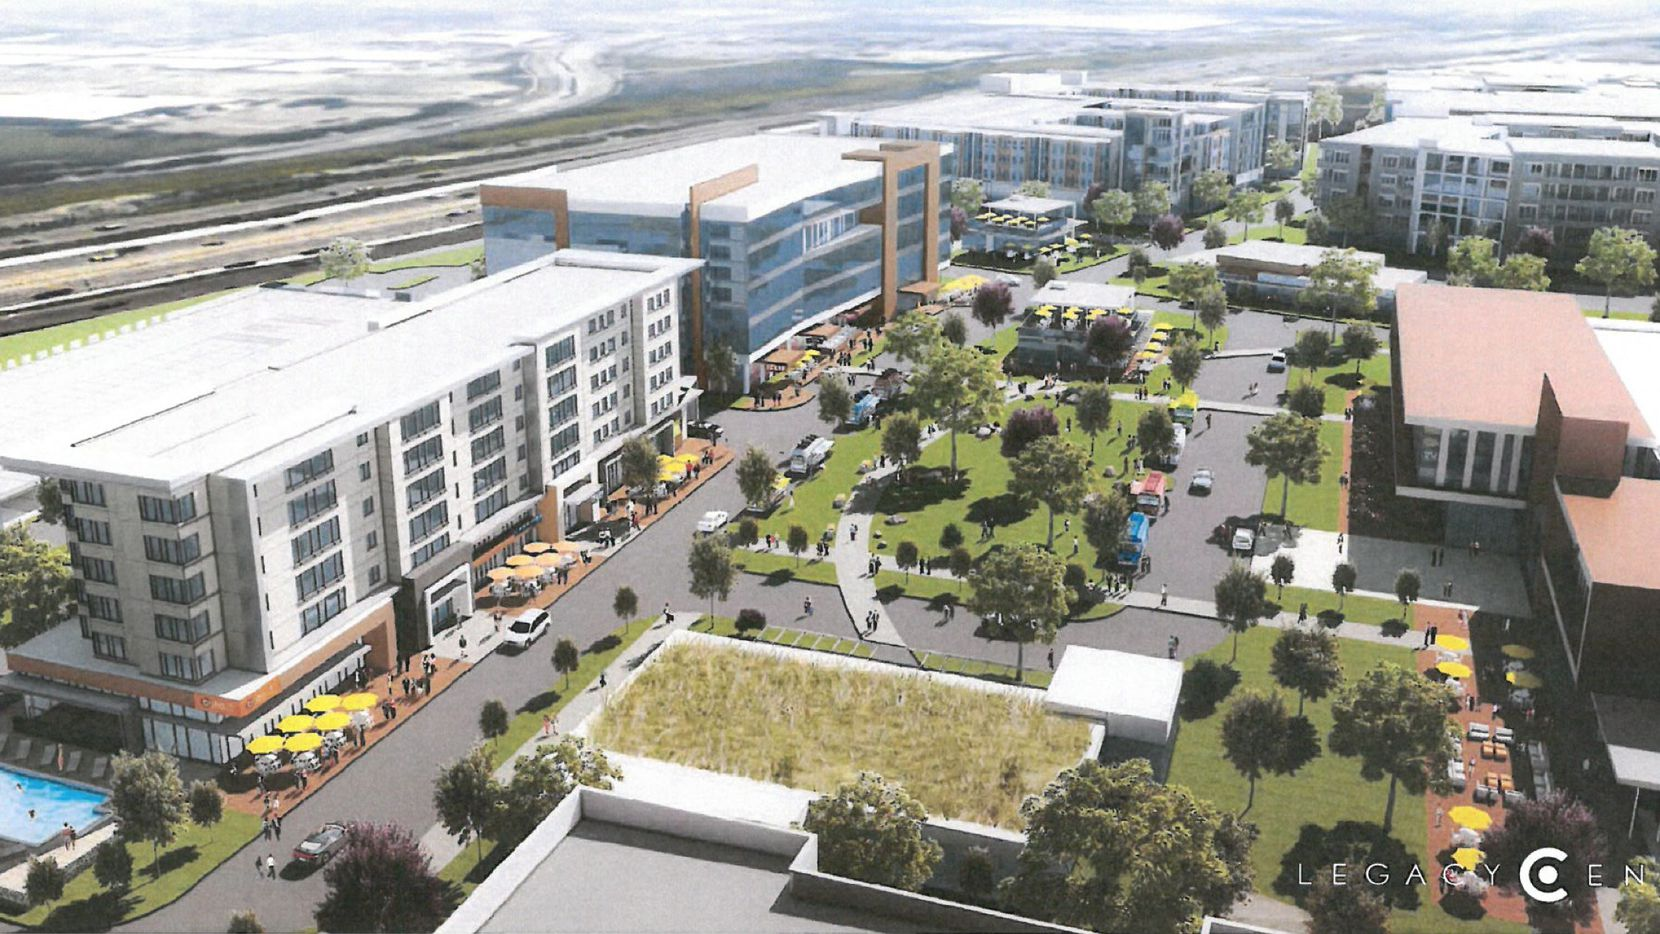 A planned urban village in the Legacy Central project on U.S. Highway 75 would add a boutique hotel, retail, restaurants and luxury apartments.